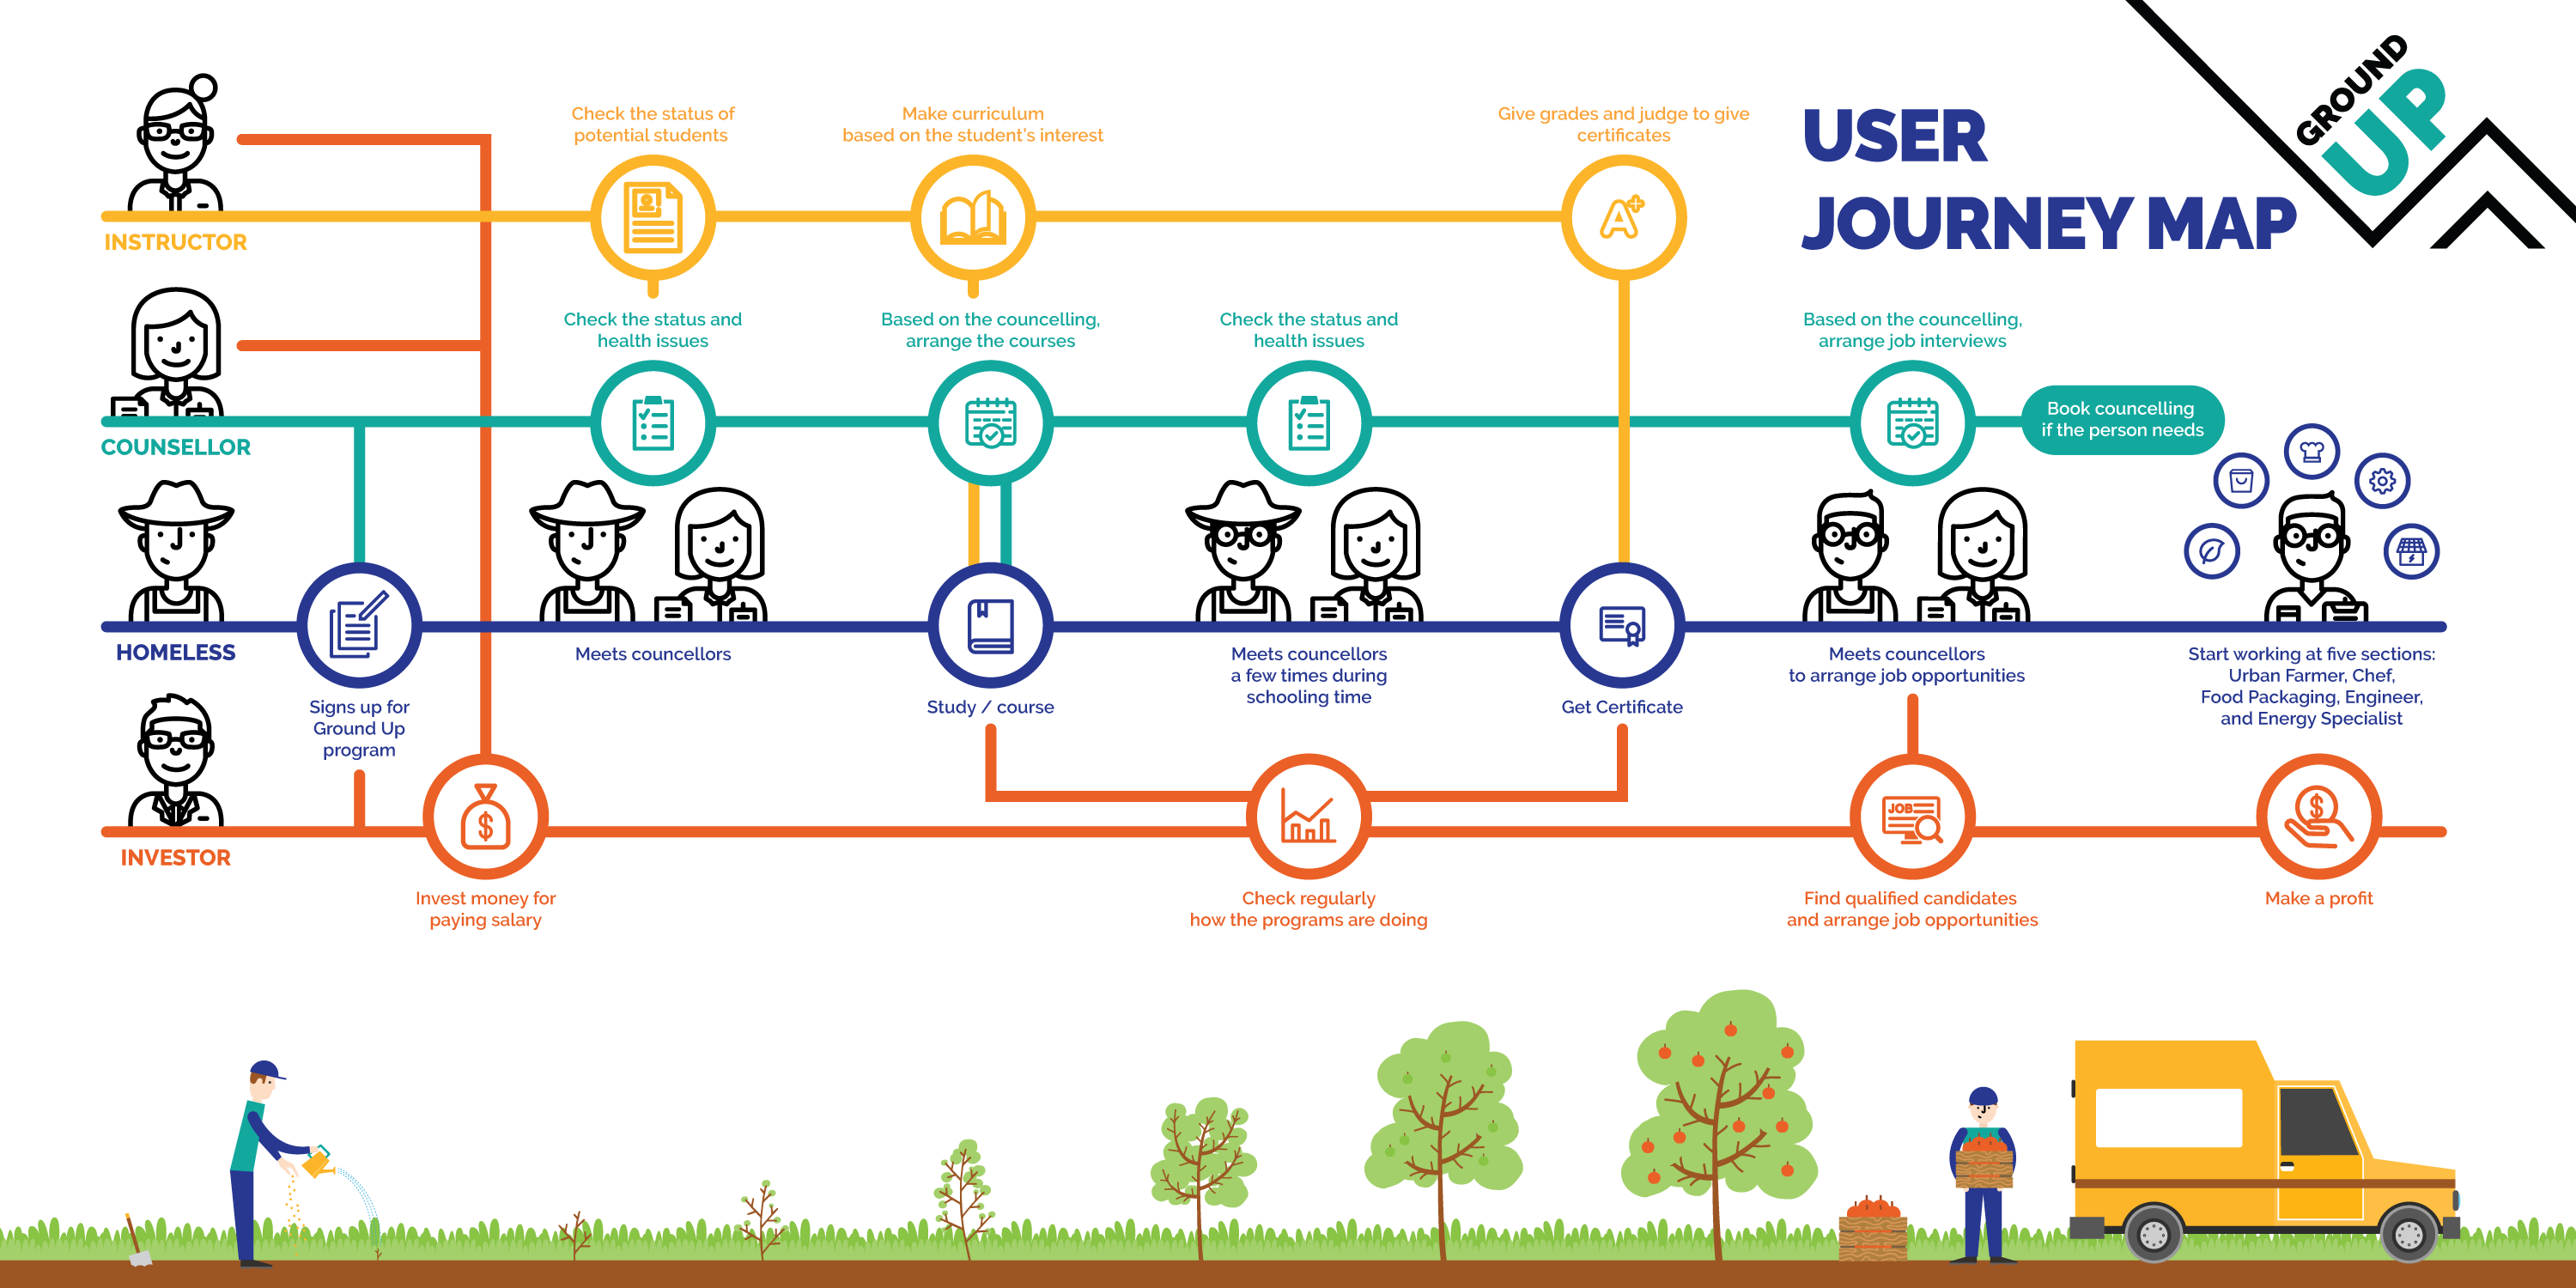 collaboration on sketches of user Journey map during Ideation process